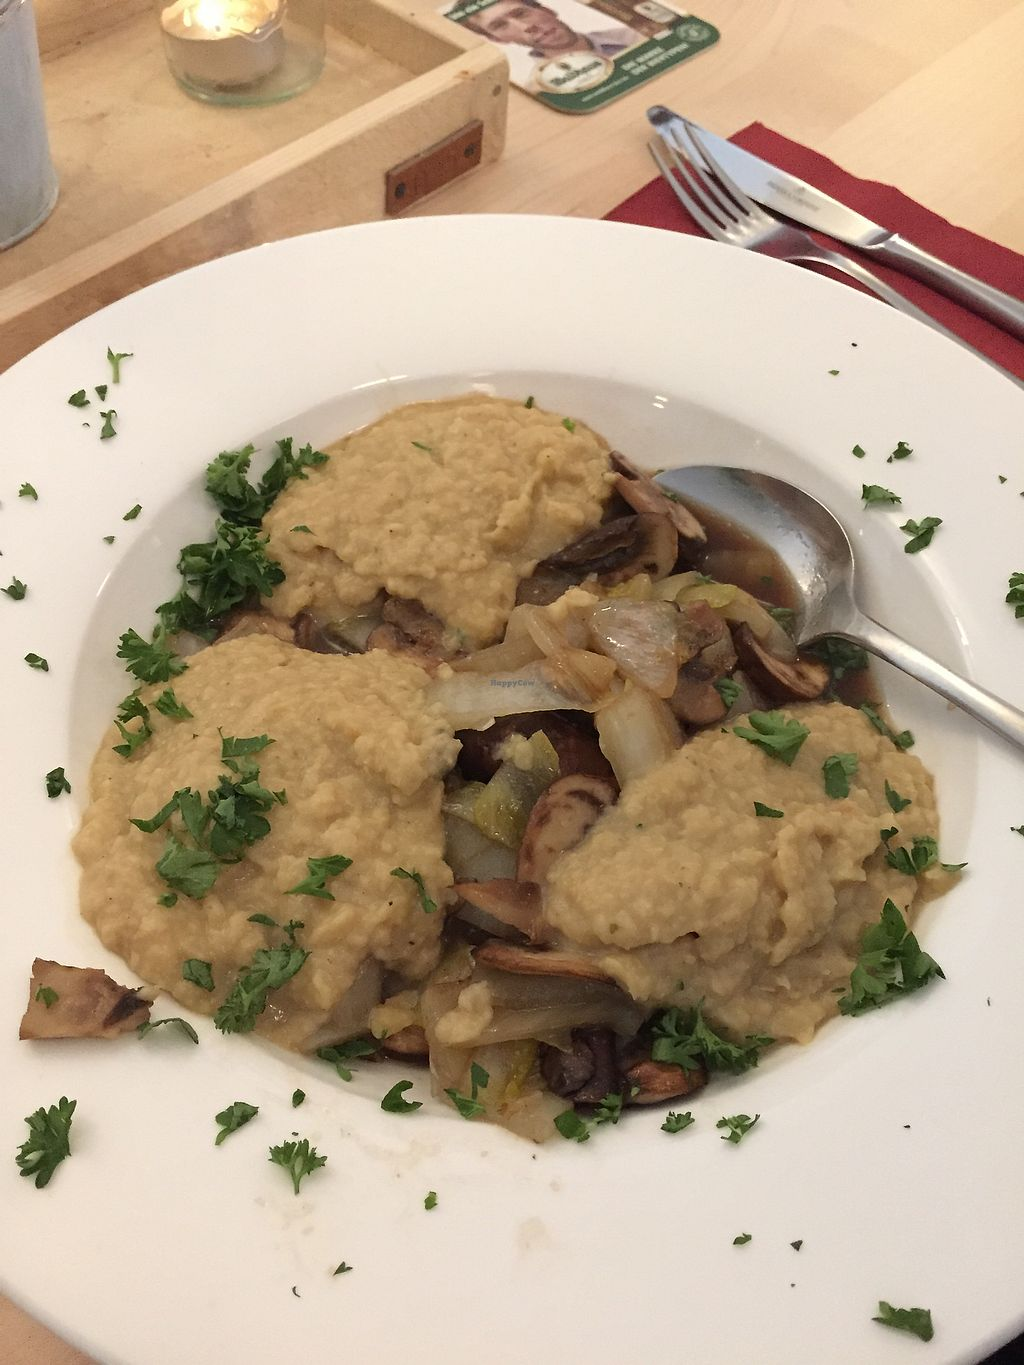 """Photo of Gasthaus zum Sternen  by <a href=""""/members/profile/vegandesi.res"""">vegandesi.res</a> <br/>Lovely chicory/ endive meal <br/> September 3, 2017  - <a href='/contact/abuse/image/100000/300334'>Report</a>"""